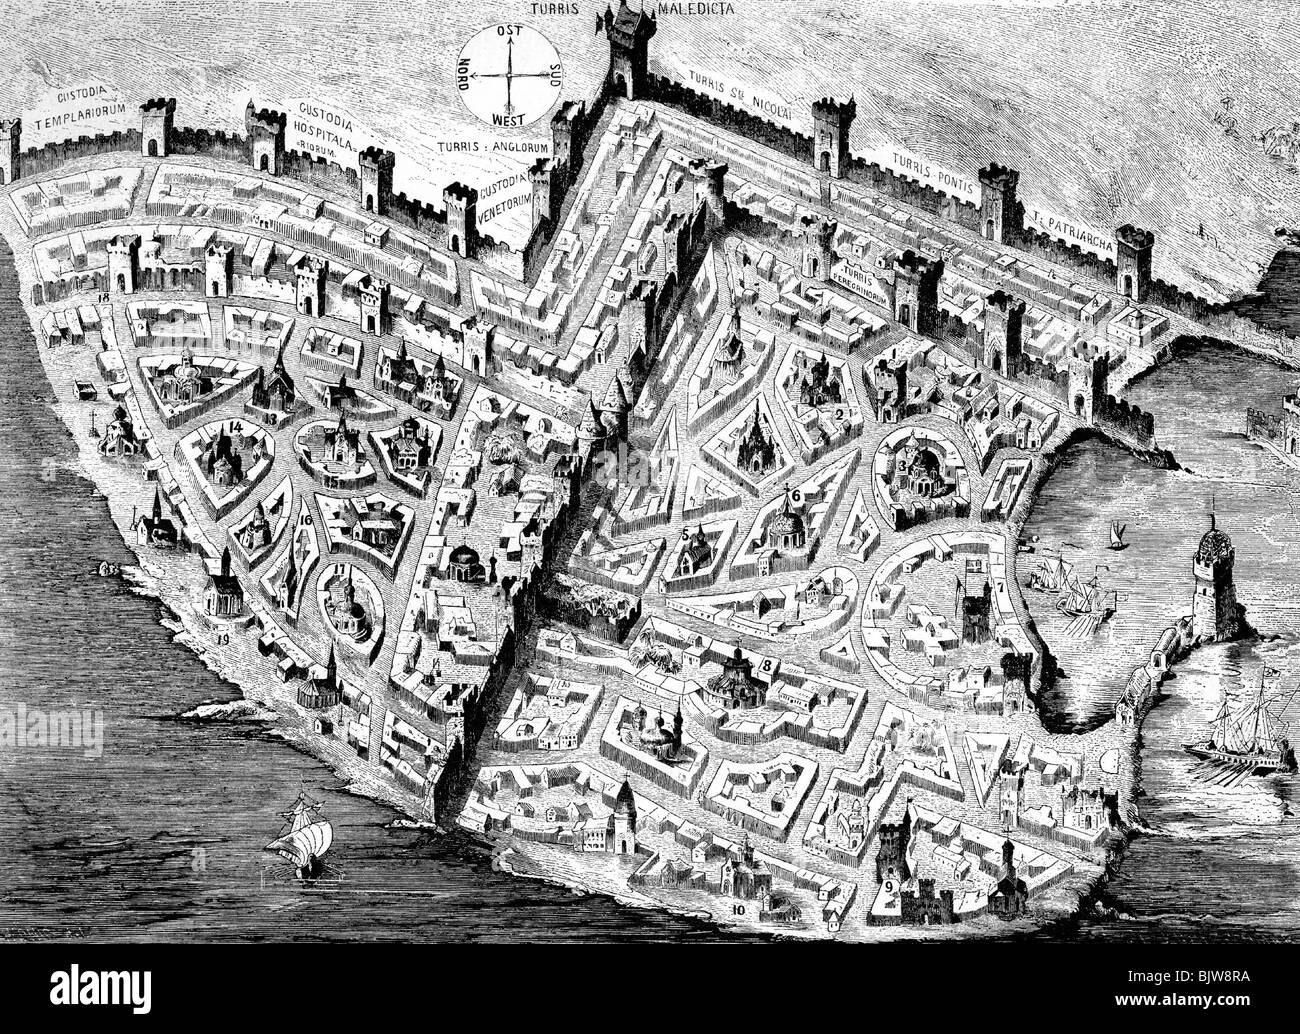 middle ages, crusades, Acre, last fortress of crusaders, fallen 1291, fortification, circa 1290, wood engraving, - Stock Image